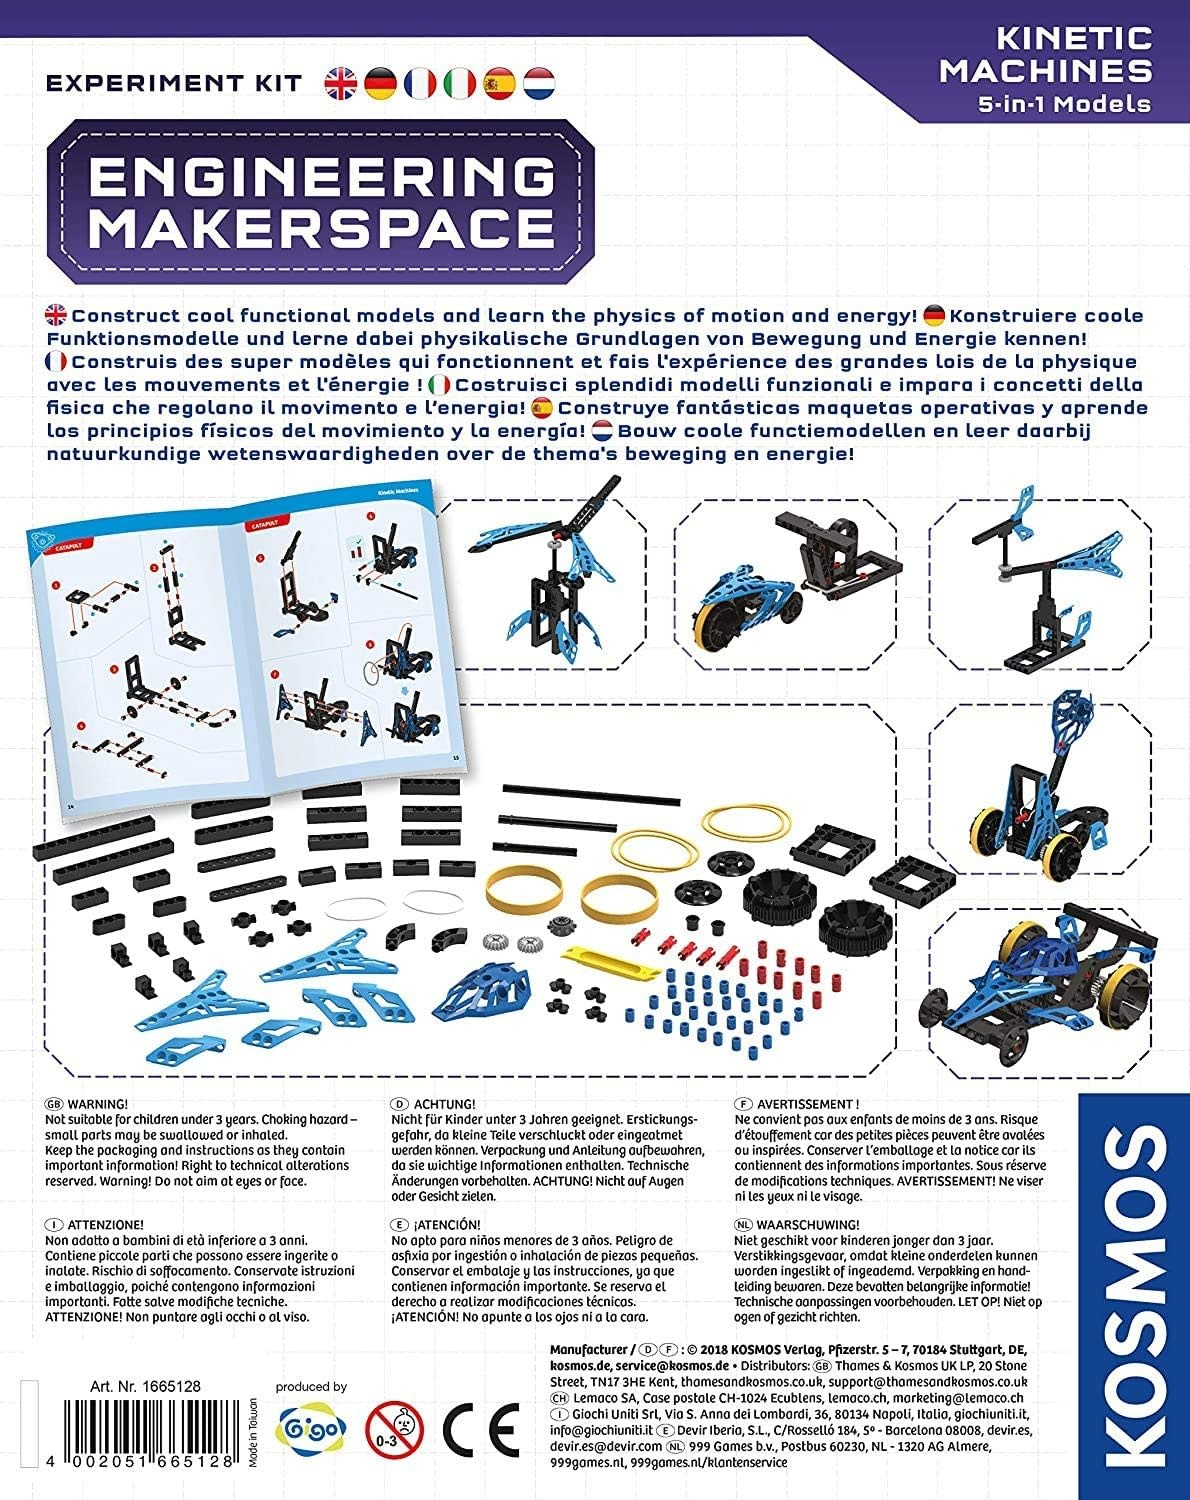 Makerspace Kinetic Machines Kit by Thames & Kosmos